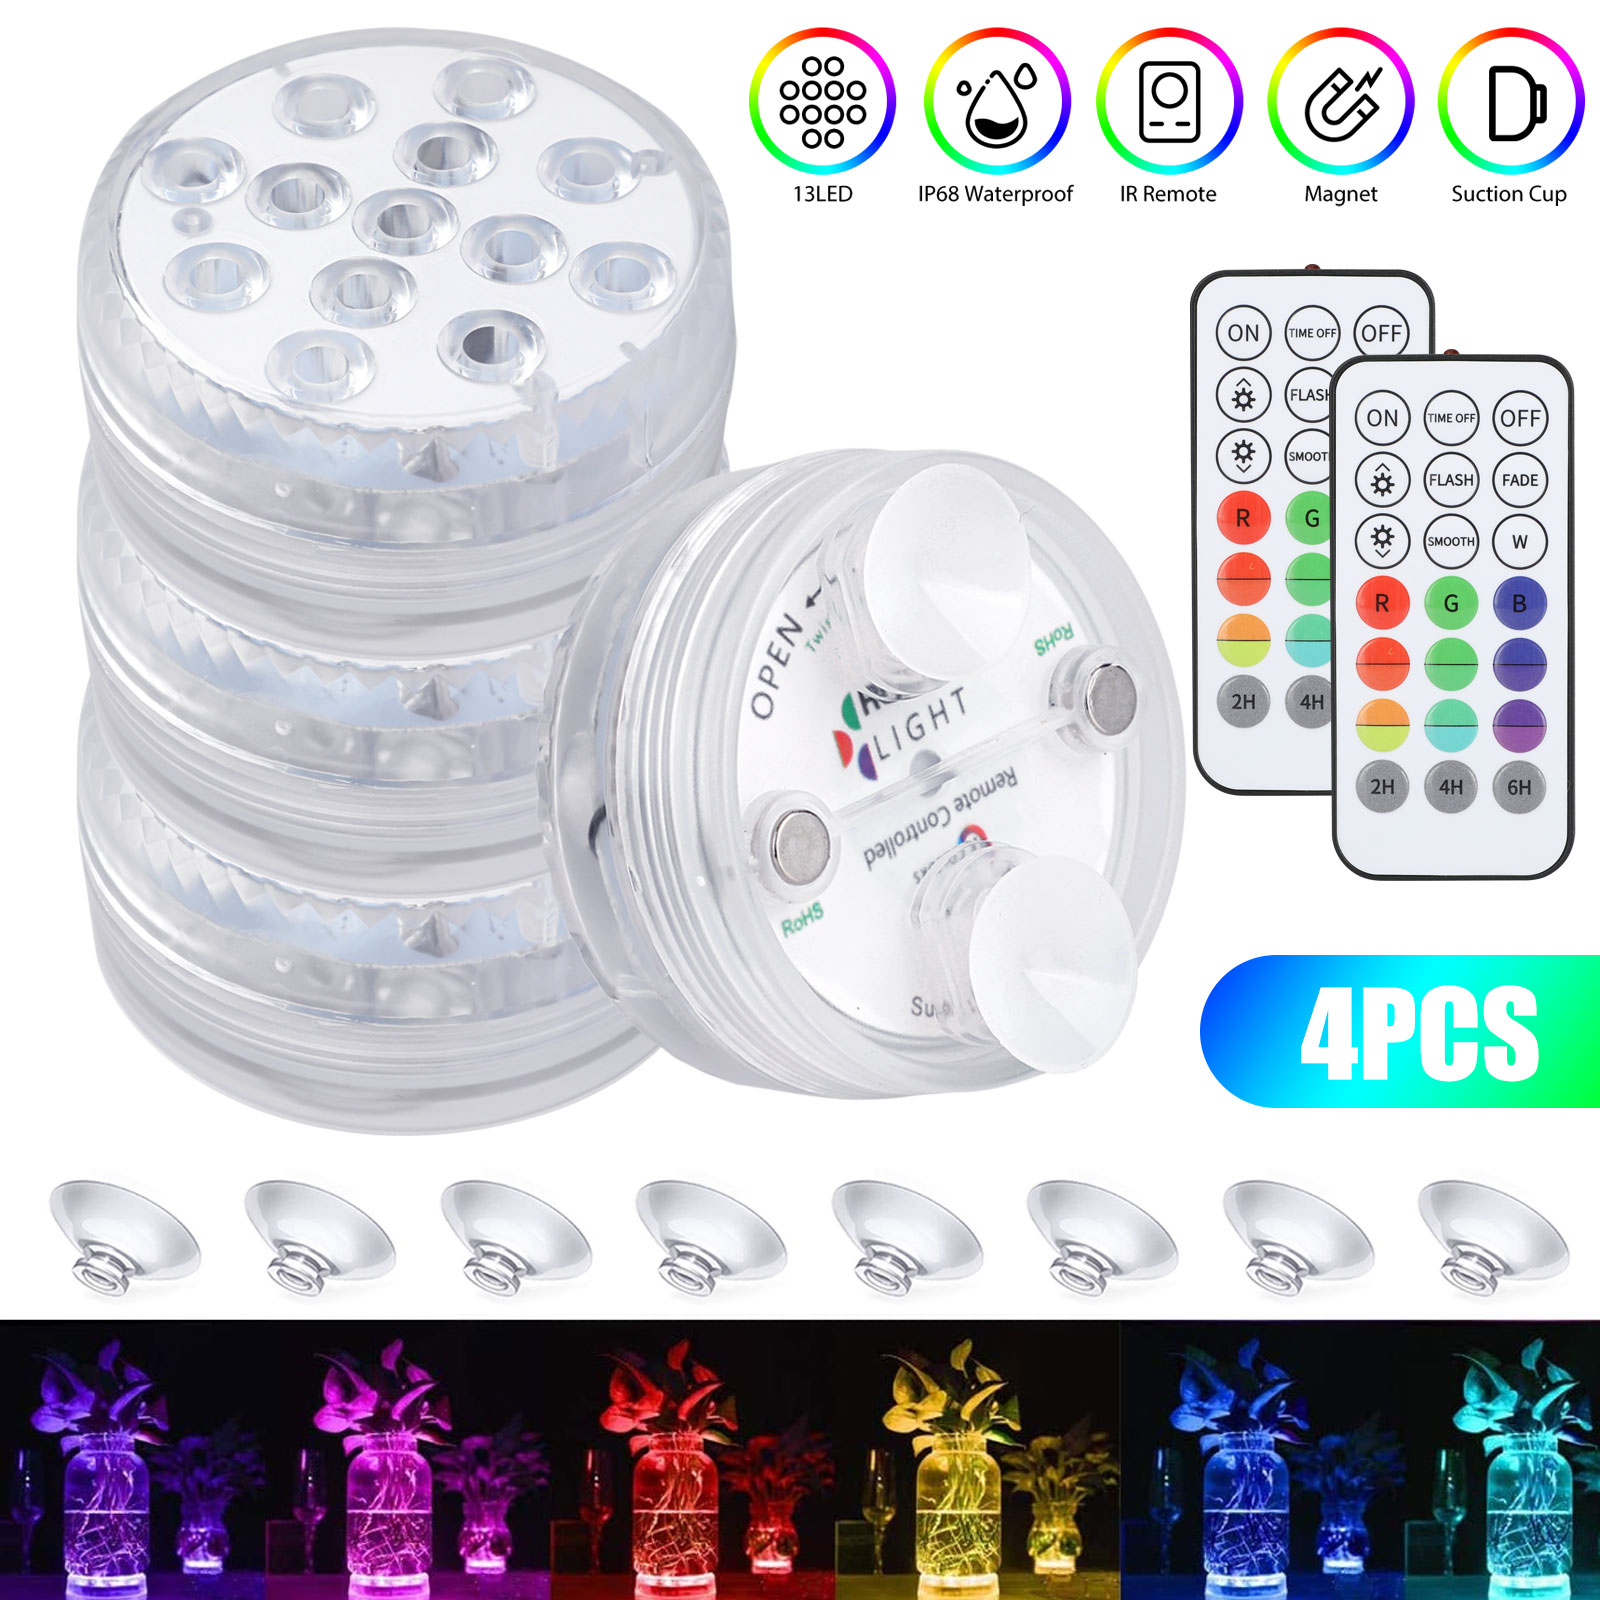 Suction Cups 4 Packs ,16 RGB Color Changing Underwater Lights for Ponds with Magnets Zorara Pool Lights for Above Ground Pools Waterproof Submersible LED Lights with Remote RF 164FT